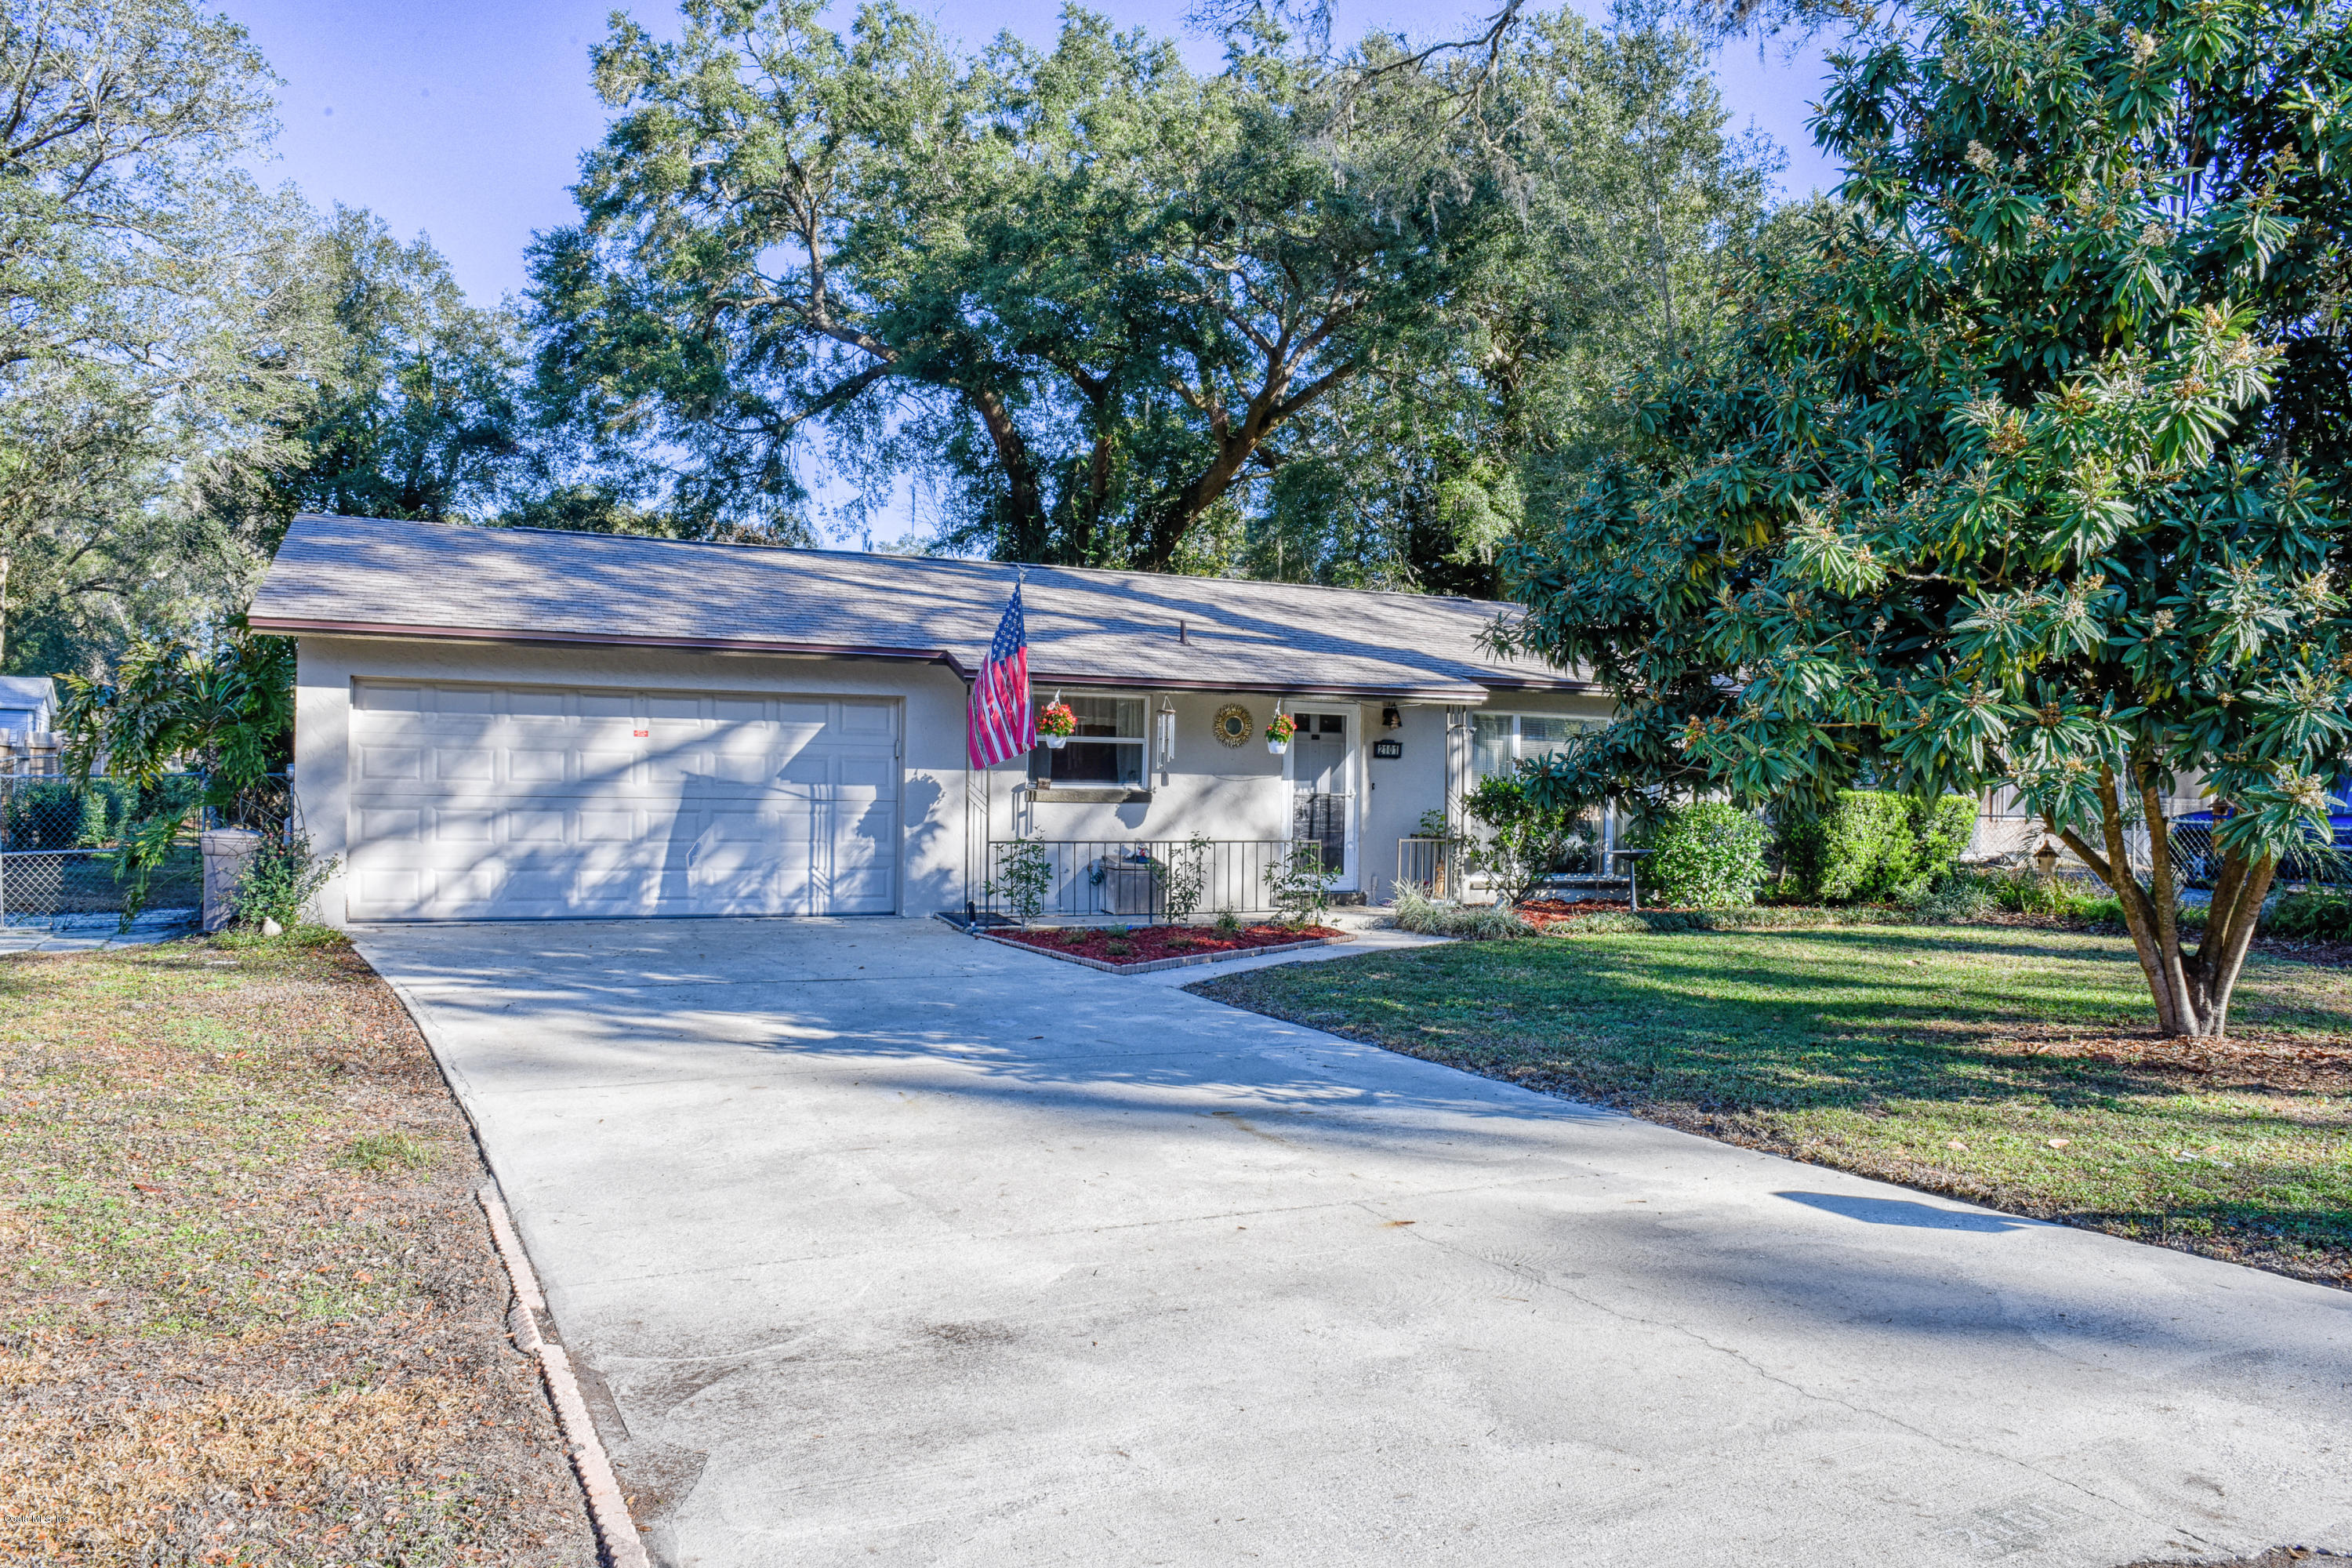 2101 NW 44TH PLACE, OCALA, FL 34475